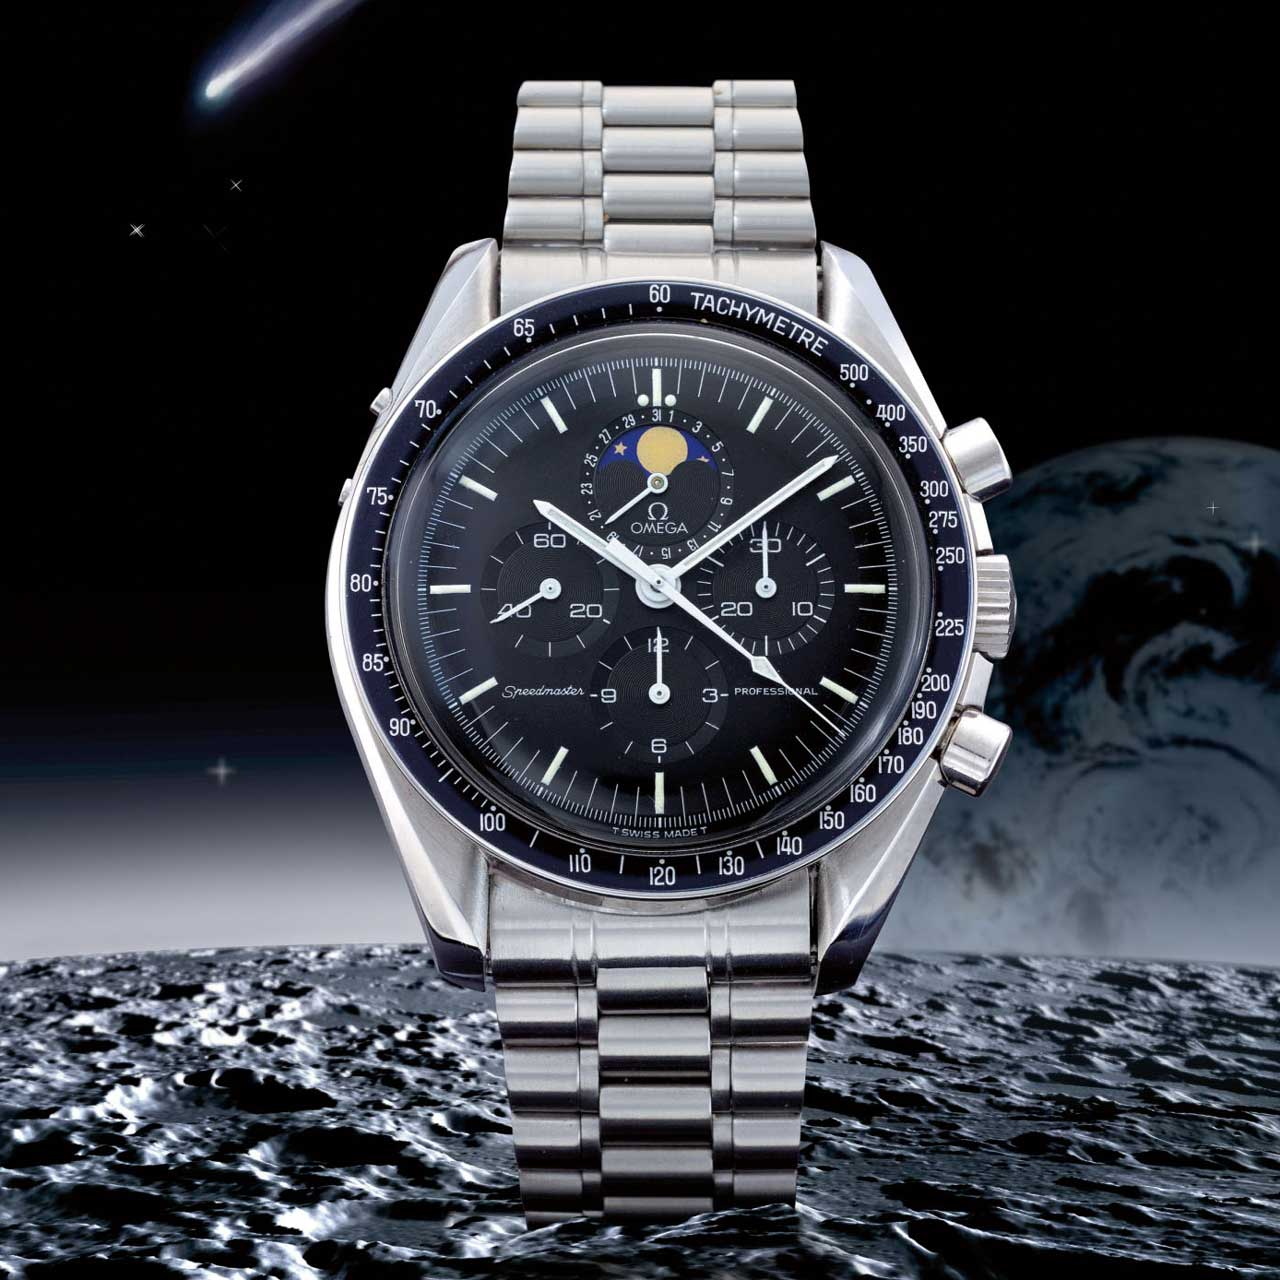 Lot 45: Speedmaster ref. 345.0809 'Red Dot Speedymoon', stainless steel chronograph with moon phases and bracelet, circa 1986